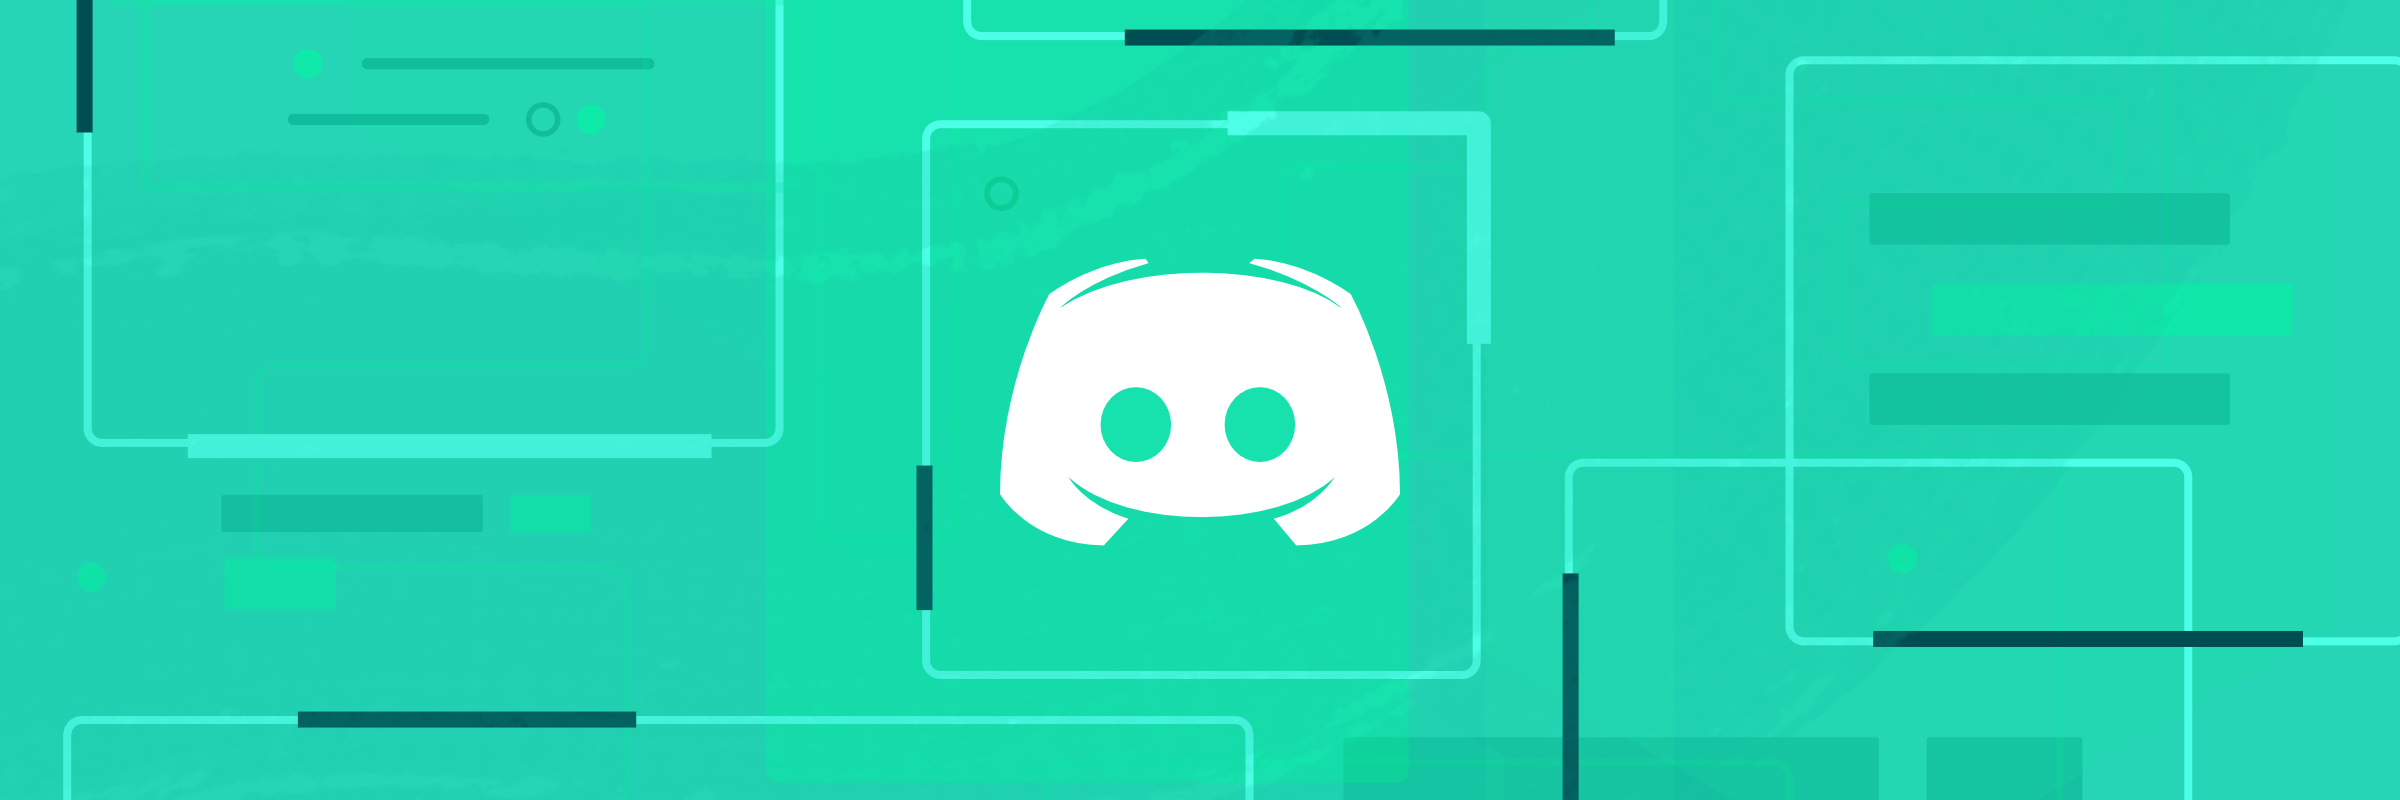 How to Build a Discord Bot in Node.js for Beginners